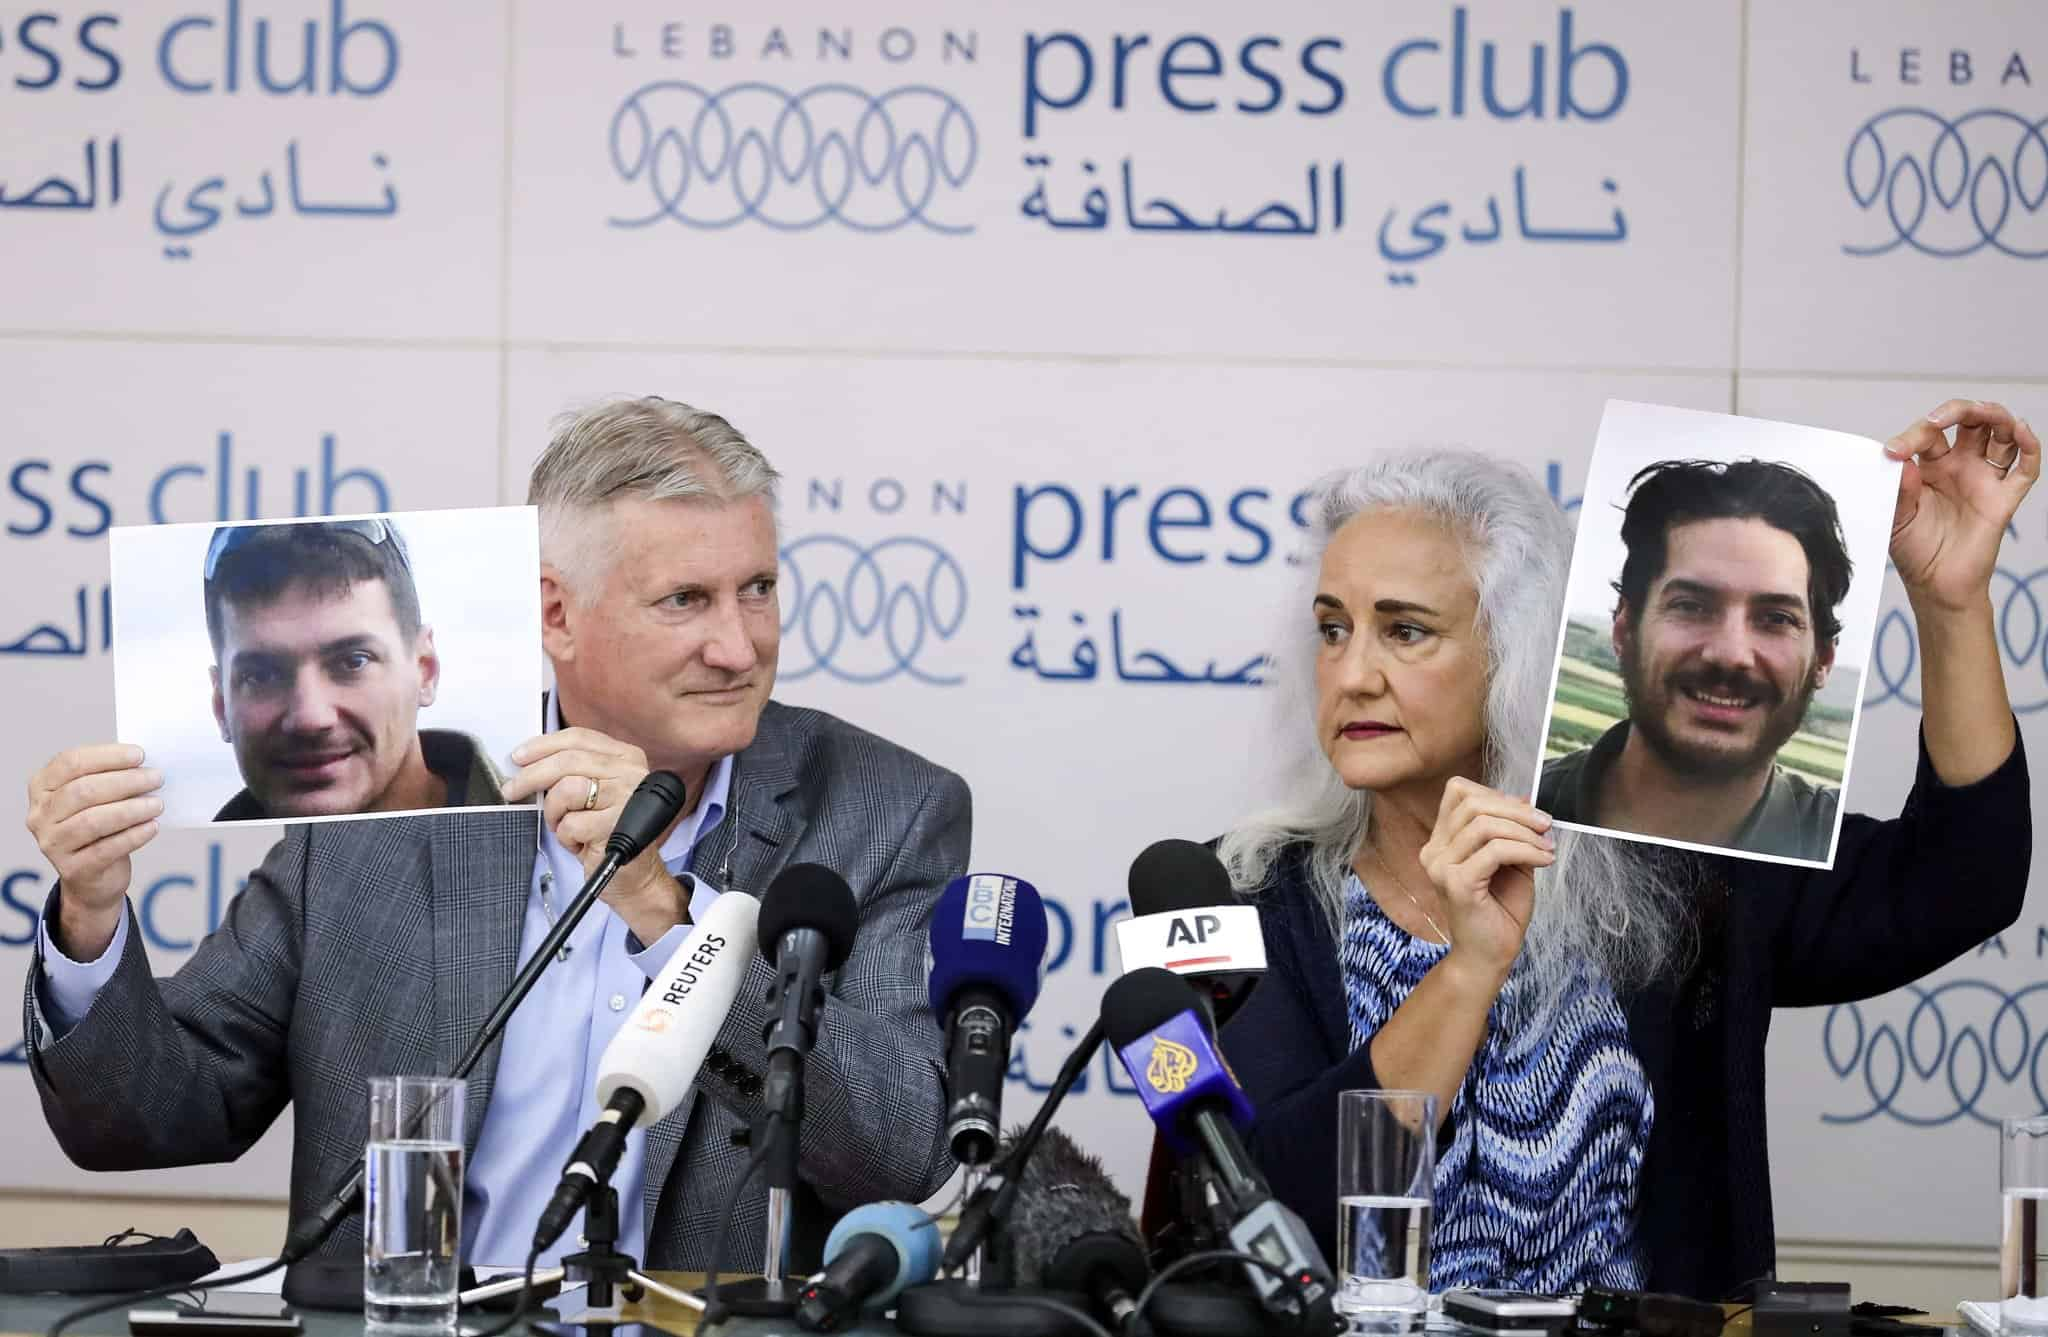 Trump Urges Syria to Release Kidnapped American Journalist Austin Tice